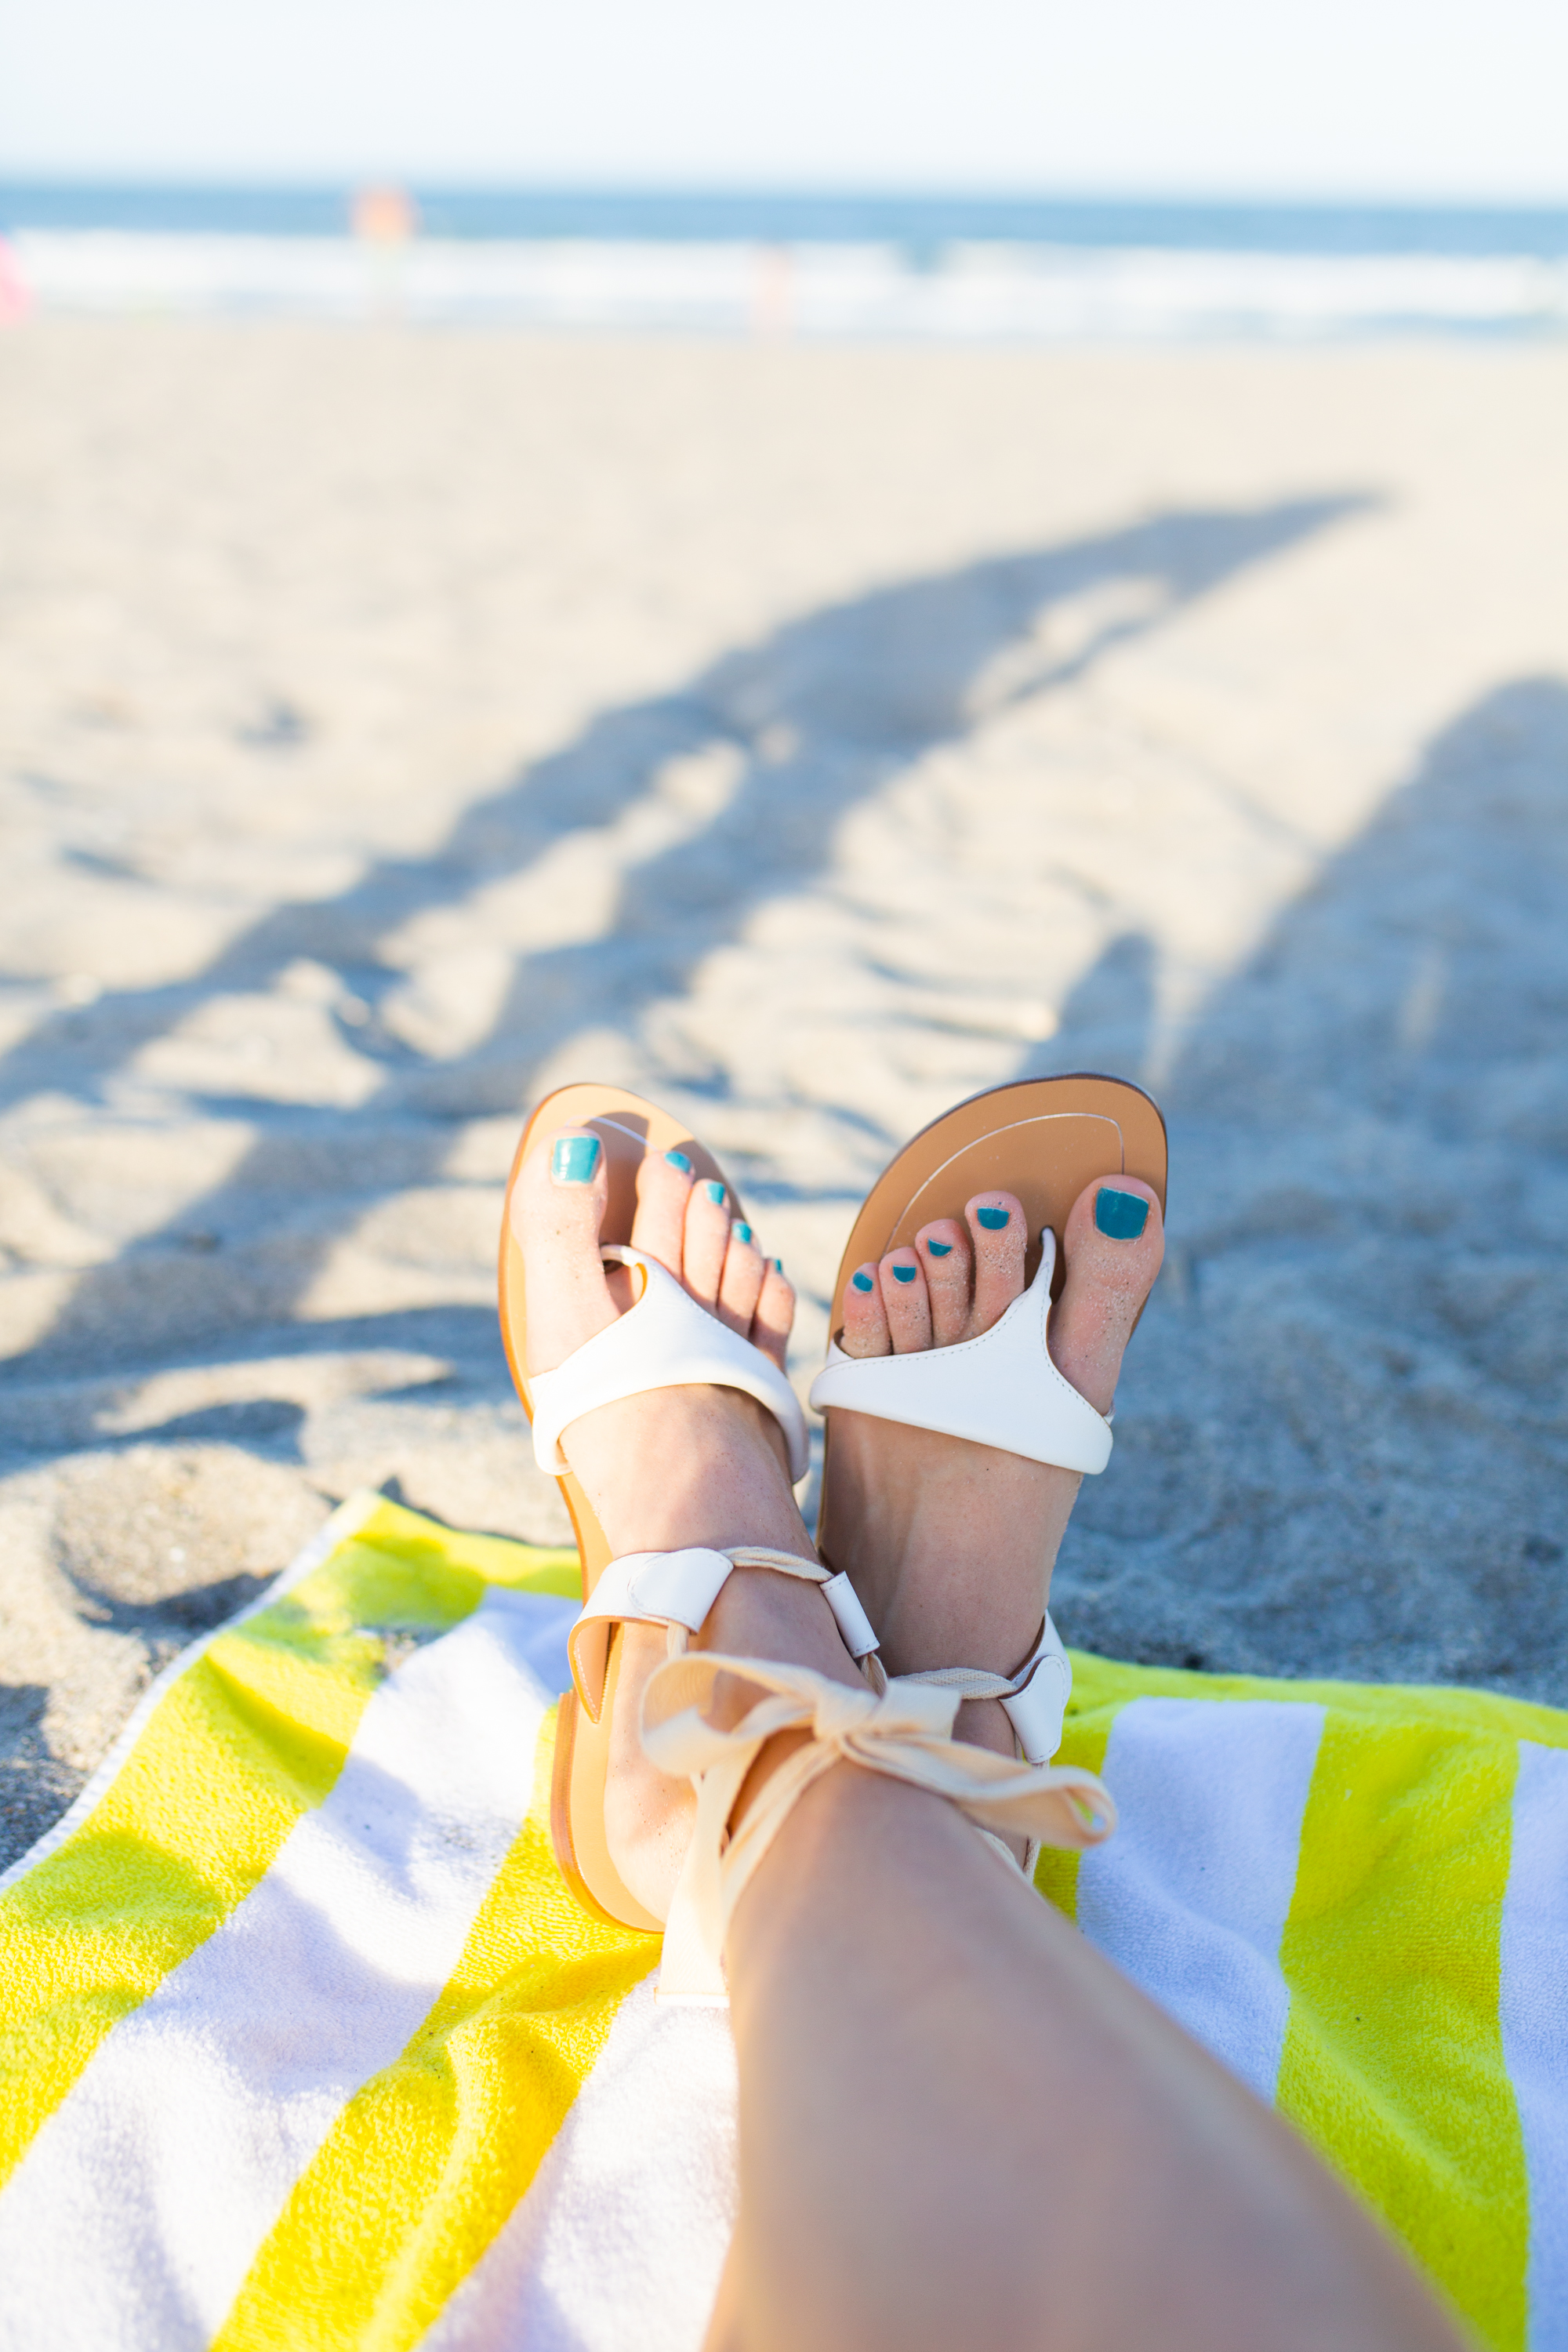 Beach Outfit Idea / Sarah Flint Grear Sandals / What to Wear on a Beach Vacation / Perfect Summer Sandals / Casual Summer Outfit / Striped Top Outfit - Sunshine Style, A Florida Based Fashion and Lifestyle Blog by Katie